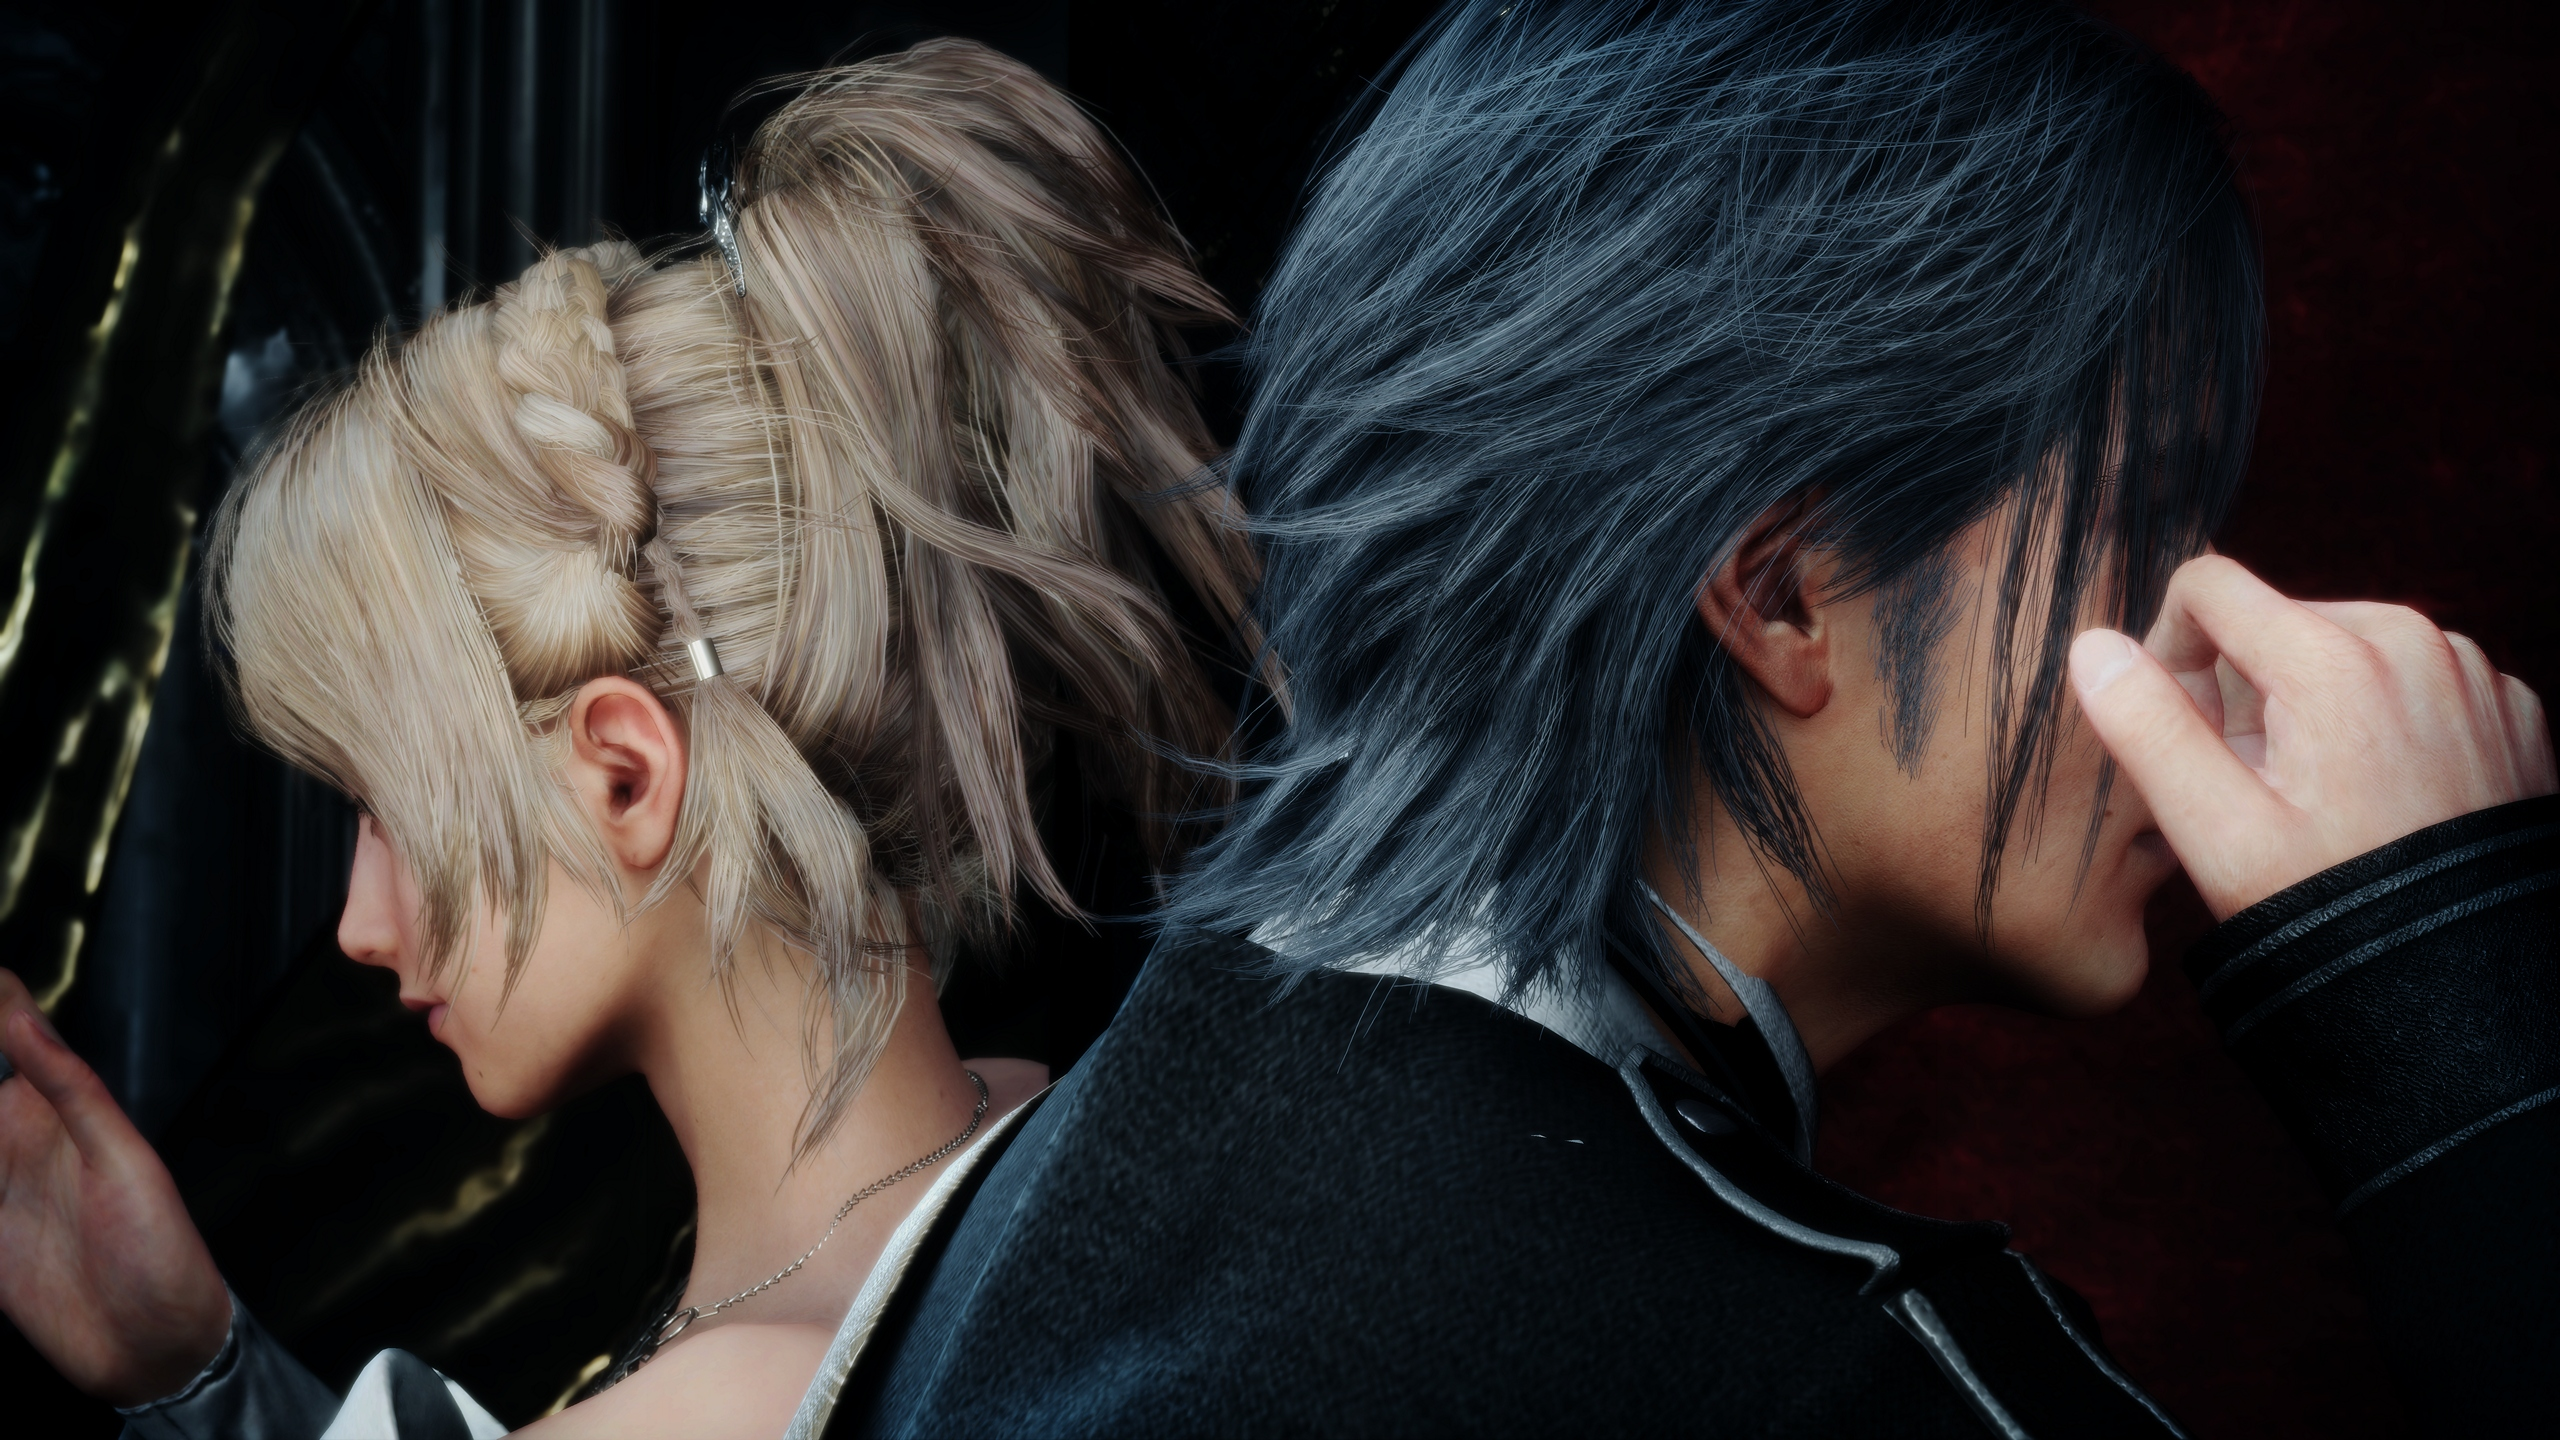 Final Fantasy Xv Wallpapers The Best 79 Images In 2018: 2560x1440 2018 Final Fantasy Xv 1440P Resolution HD 4k